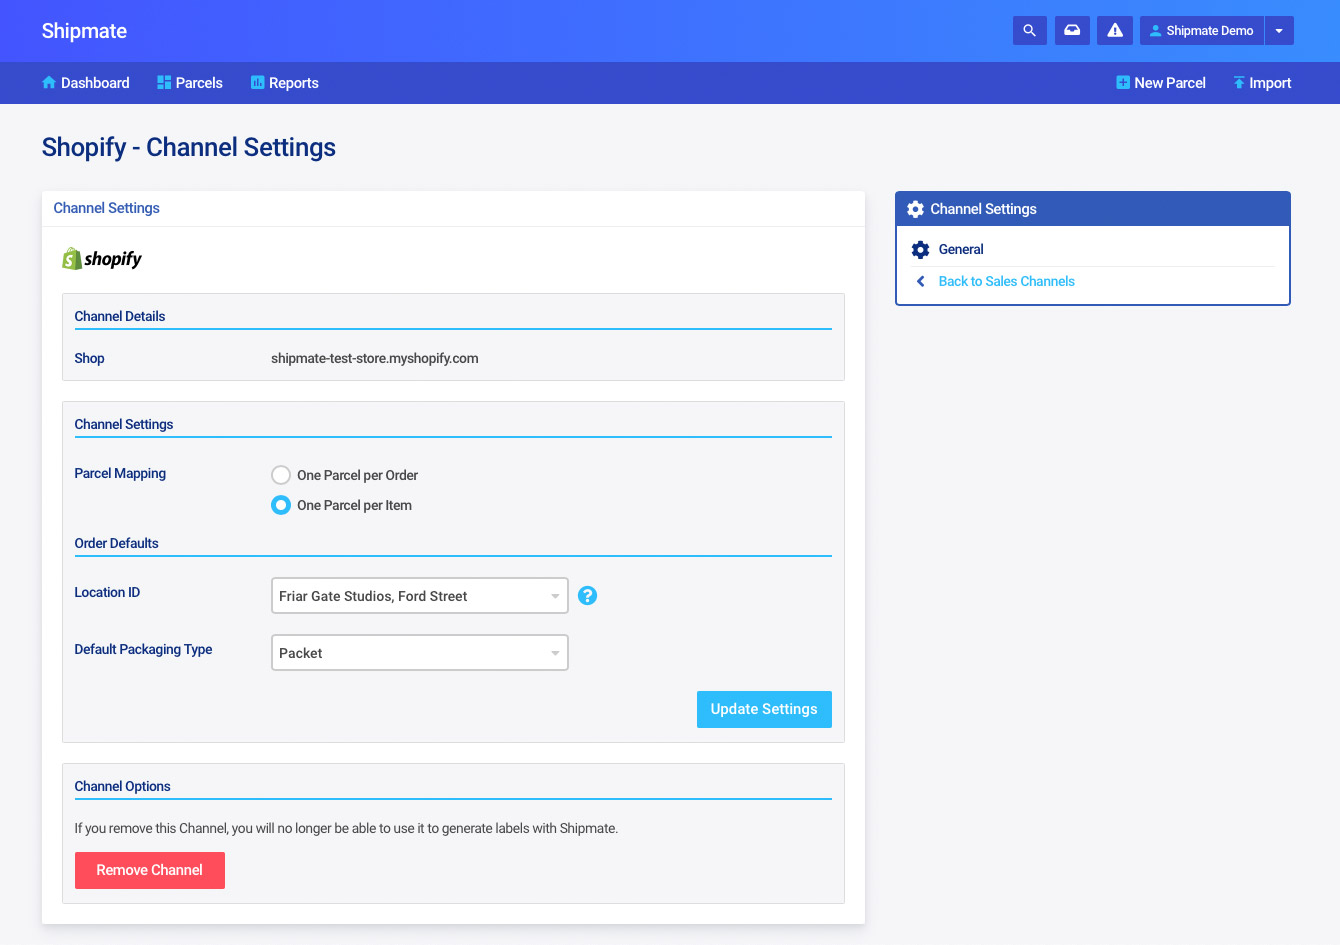 Shipmate - Shopify Channel Settings